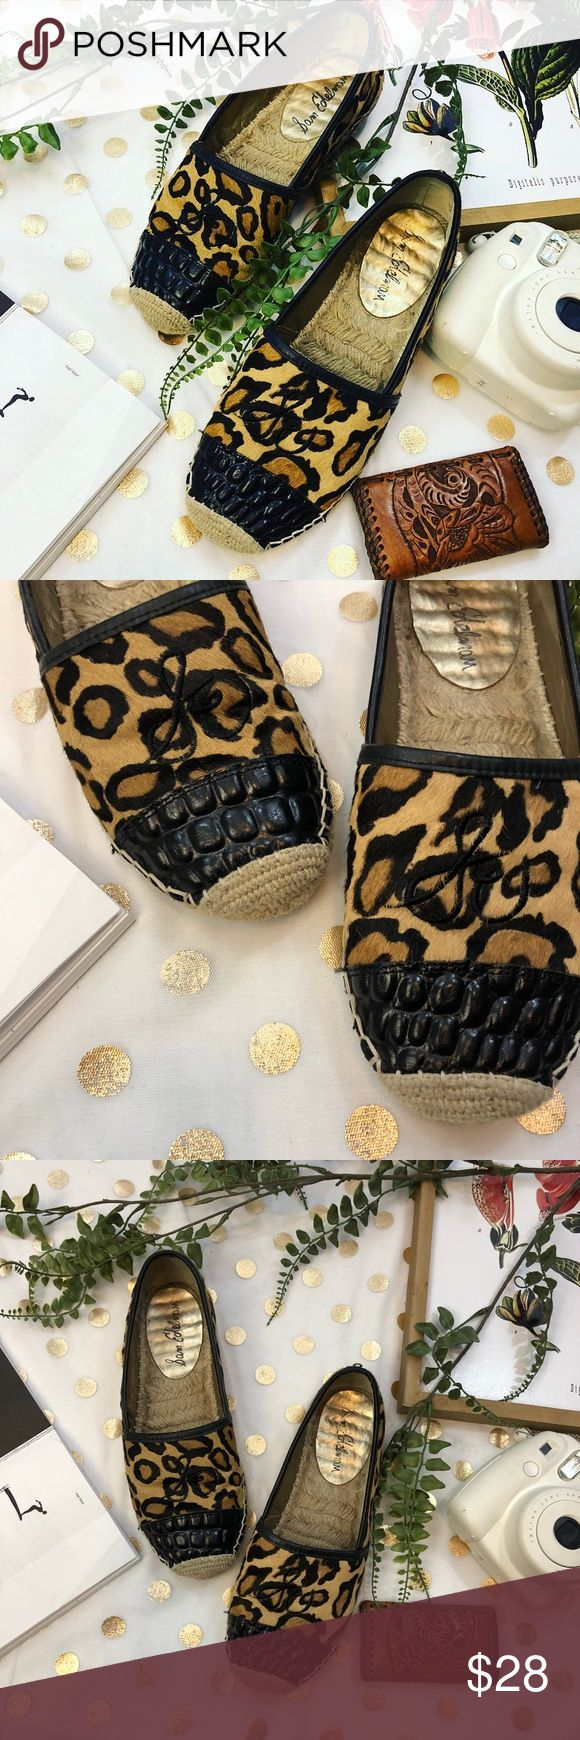 Sam Edelman cheetah leather espadrilles size 7.5 Sam Edelman cheetah leather espadrilles size 7.5 In good used condition  A comfortable shoe that be worn all day while running errands or shopping your heart out !  I love a pop of cheetah during spring , well any season really ✨  Any ? Please ask  I would love to accept your offer ✨💛 Sam Edelman Shoes Espadrilles